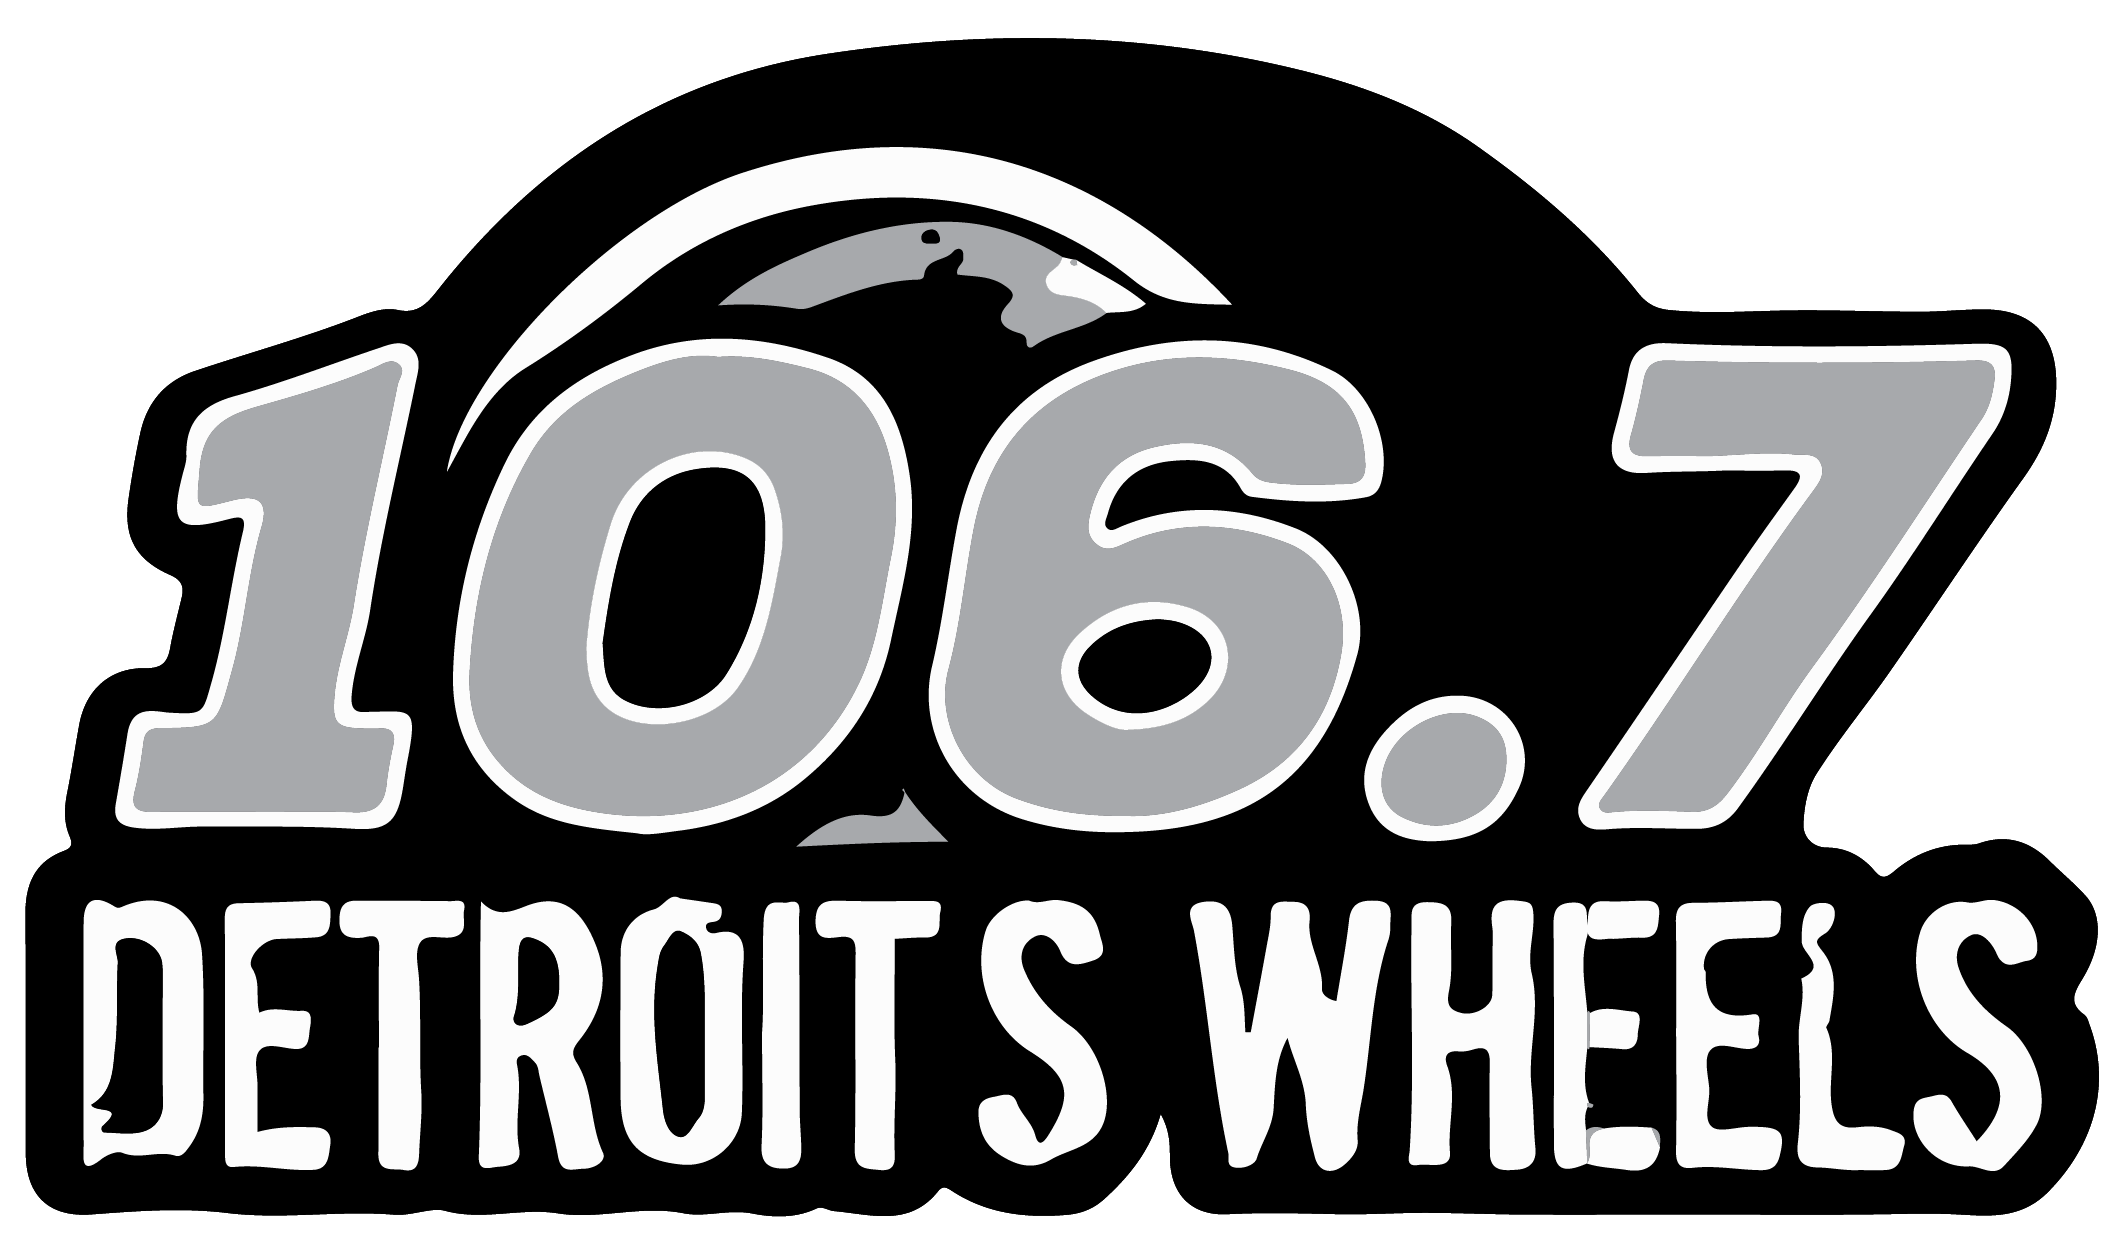 106.7_DetroitWheels.png